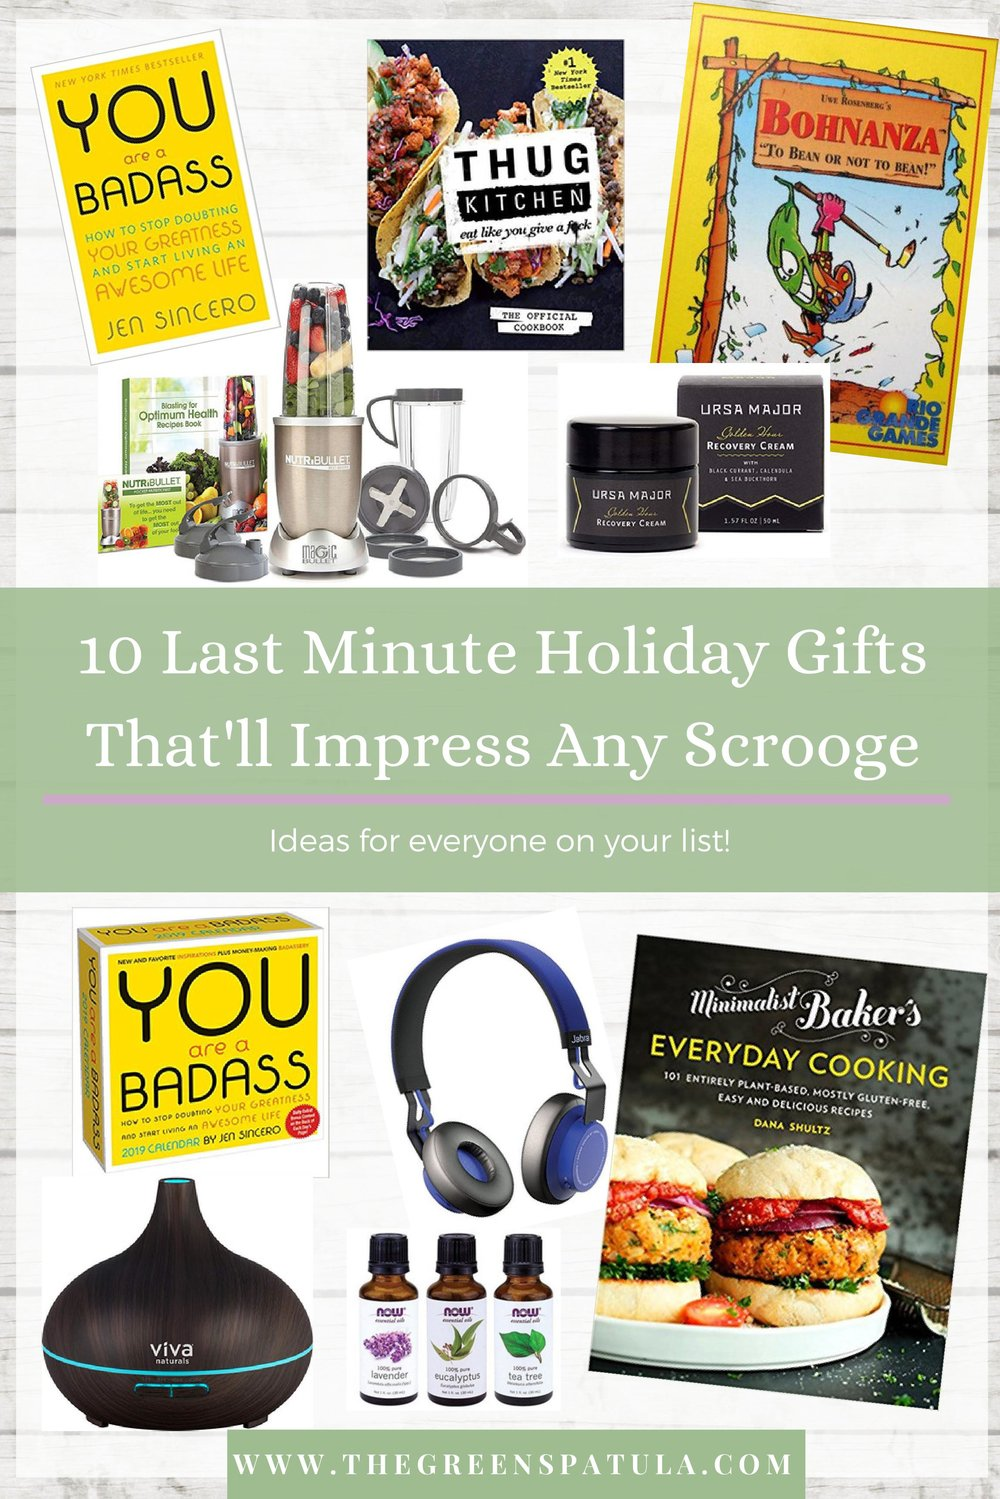 10 LAST minute holiday gifts that'll impress any Scrooge - If you're stuck and have no idea what to get the people in your life for the holidays check out this gift guide. It's got everything from books and skincare to kitchen gadgets and board games. It has ideas for everyone on your list! 10 gifts that people will actually use and enjoy. Want to know the best part? You can get these delivered to your house in just 2 days (thanks Amazon) and totally avoid the holiday crowds at the mall. That sounds like a dream! #giftguide #christmas #wellness #vegan #plantbased #vegan #health